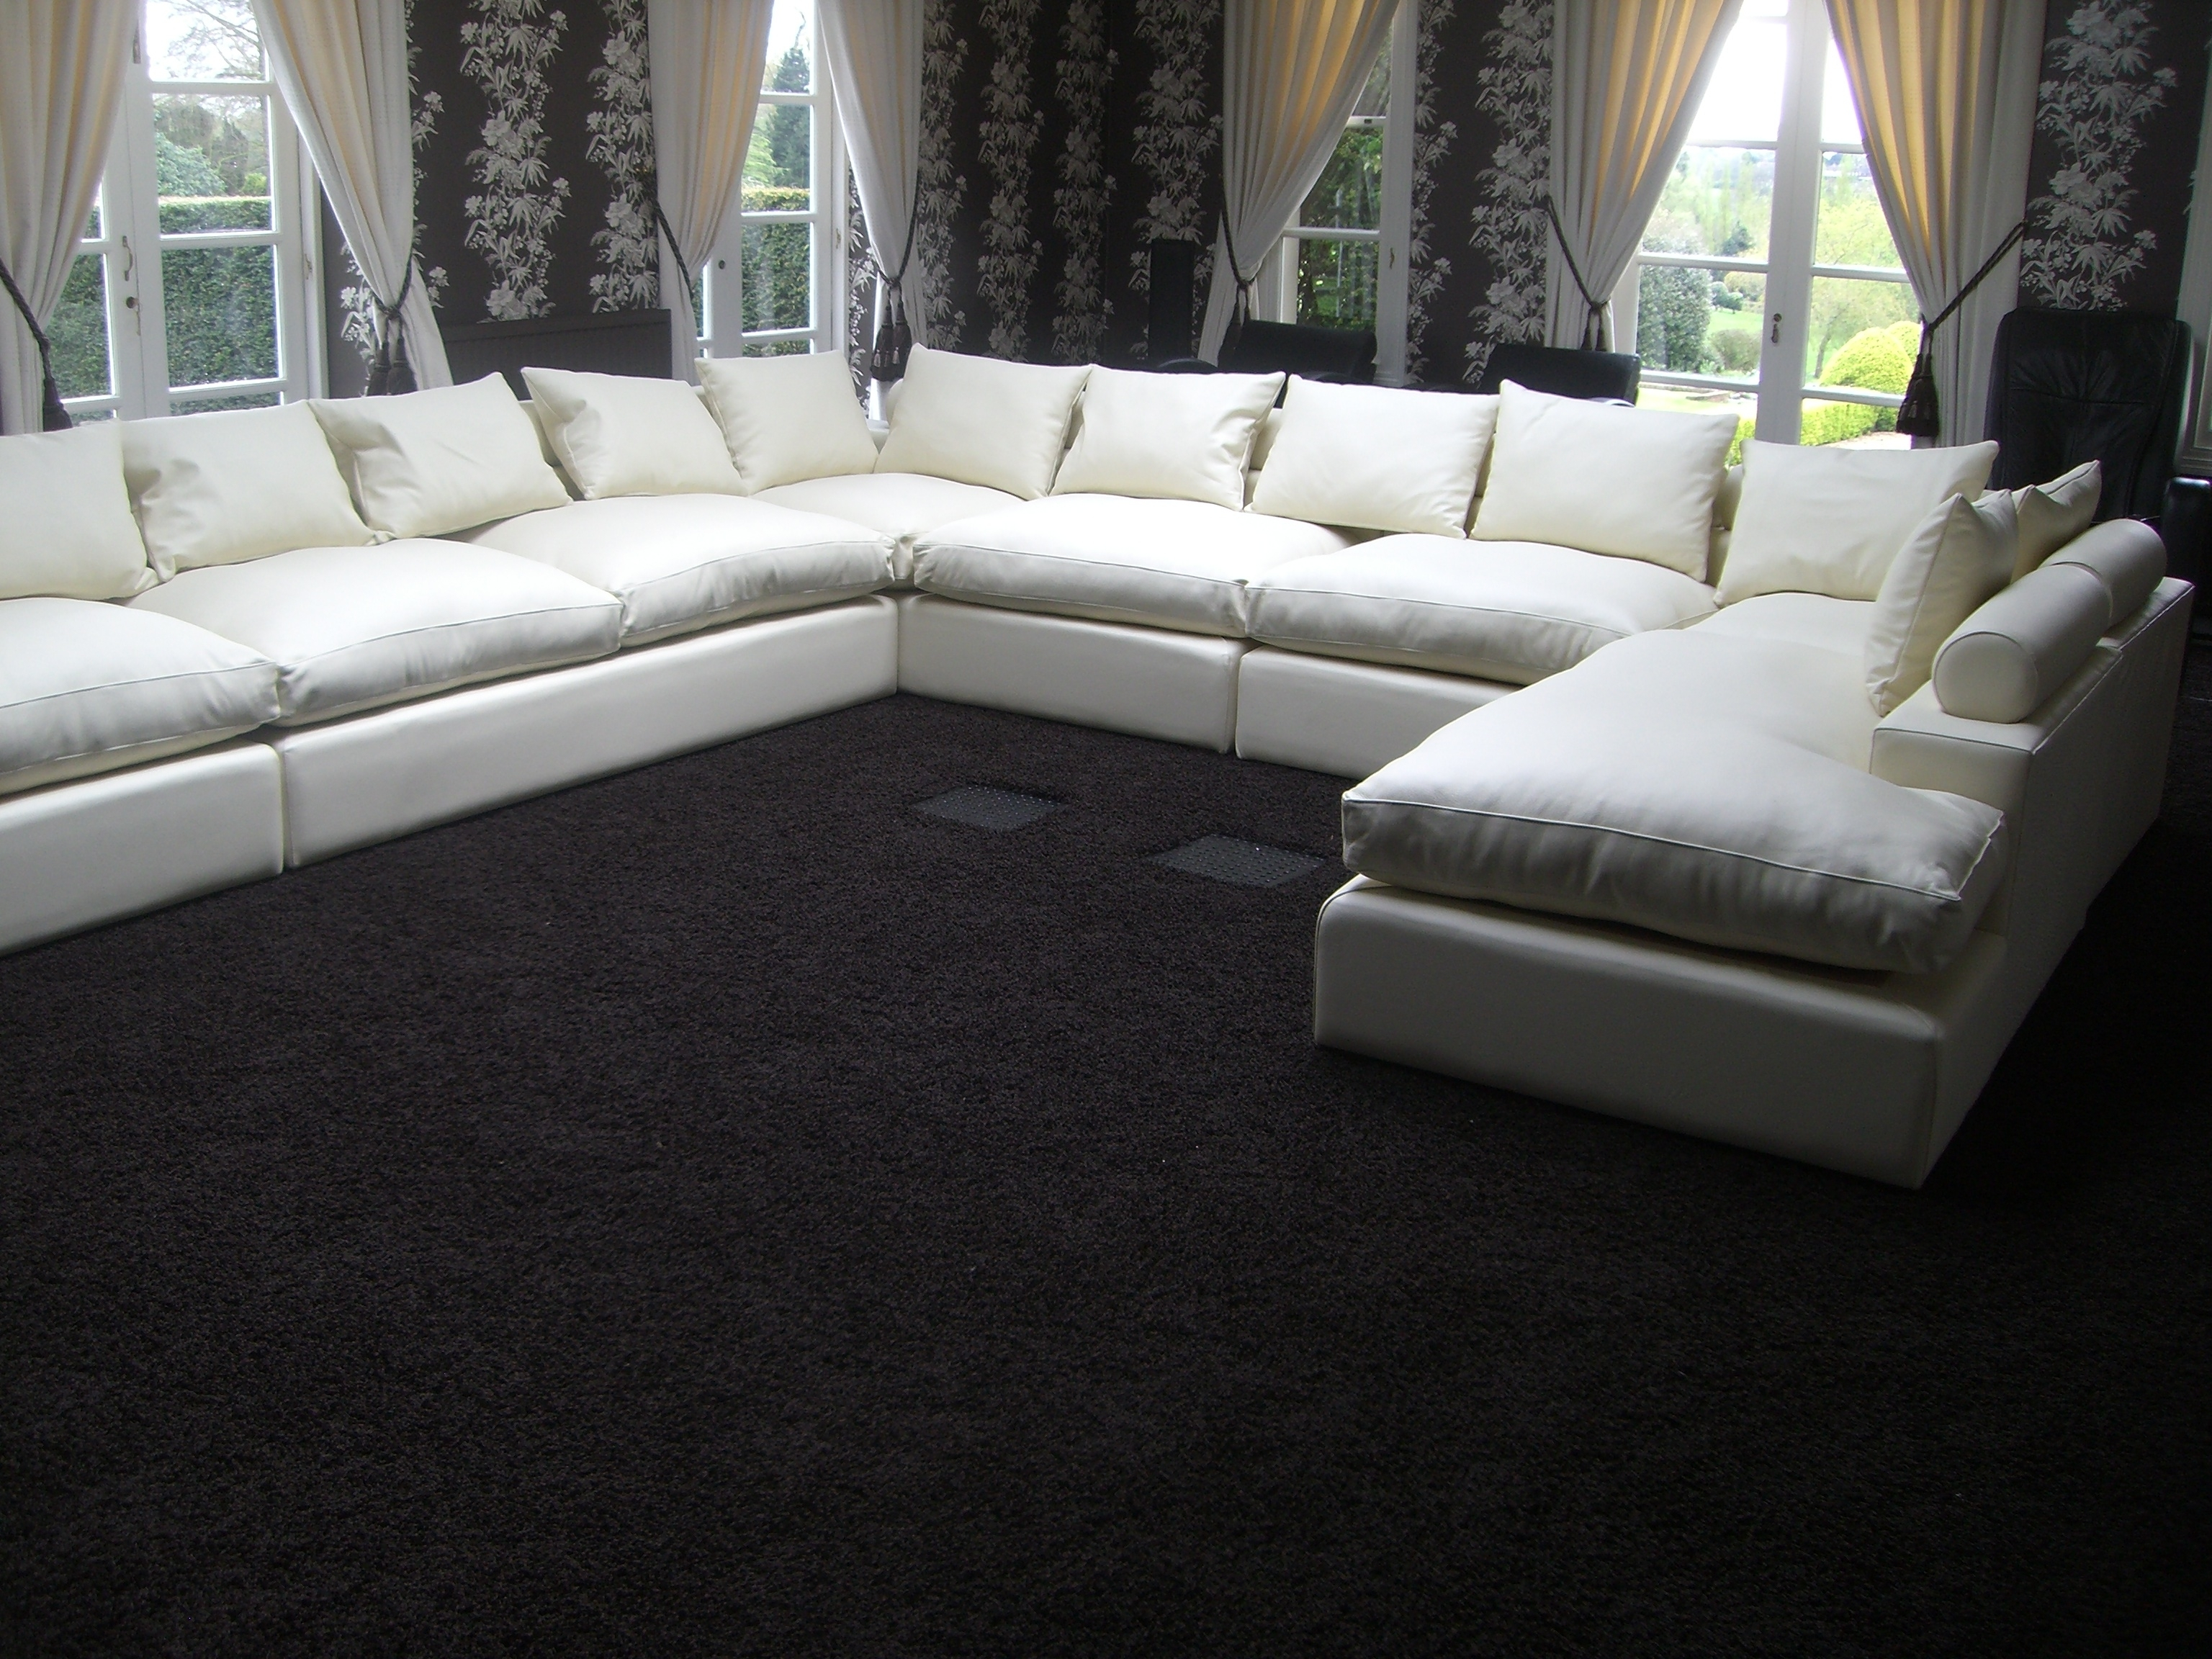 Large U Shaped Sofa 44 With Large U Shaped Sofa – Fjellkjeden Inside Huge U Shaped Sectionals (View 3 of 15)